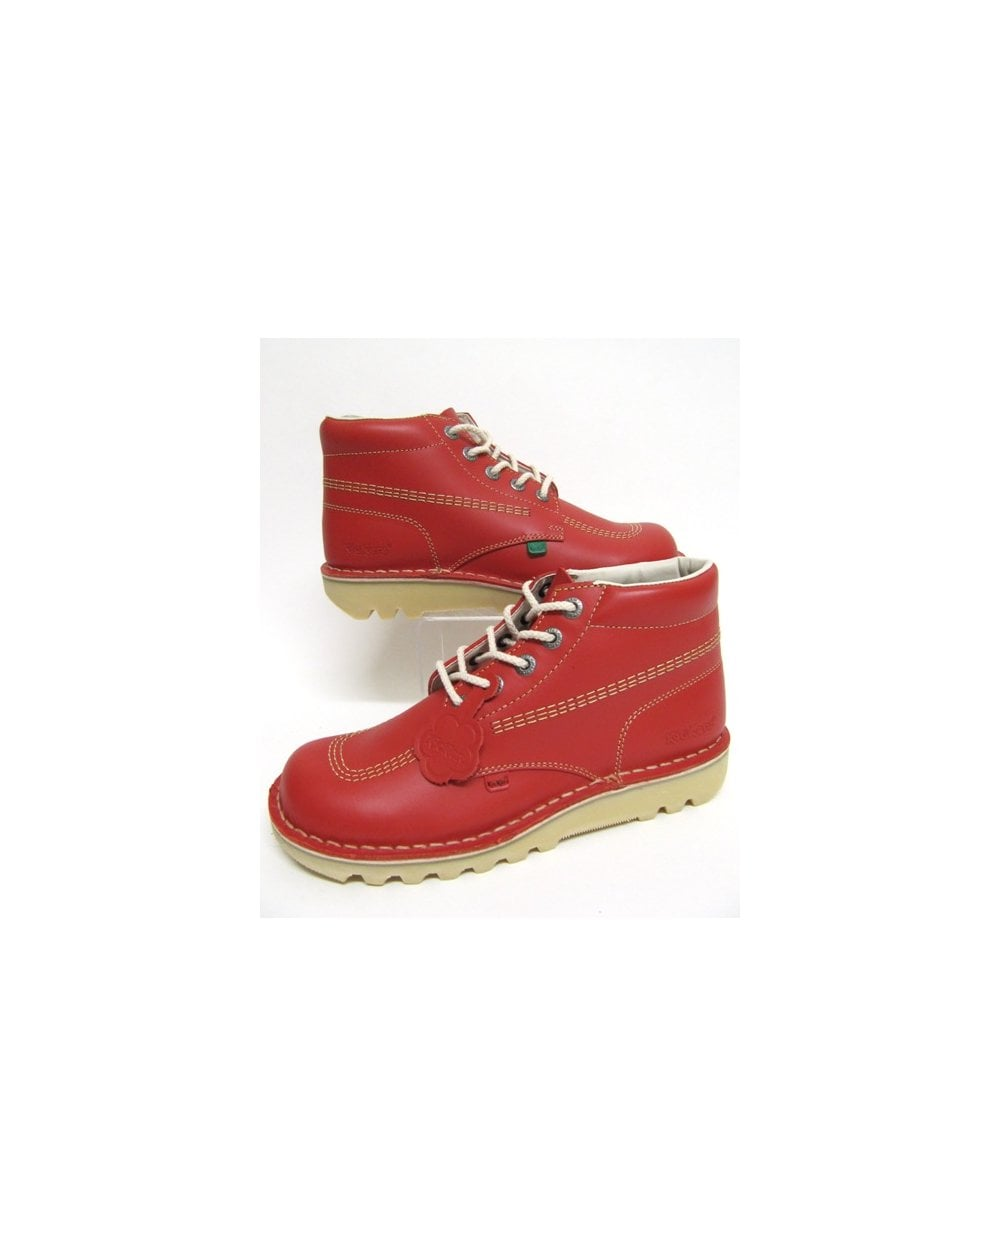 00340094d88 Kickers Kickers Kick Hi Boots In Leather Red